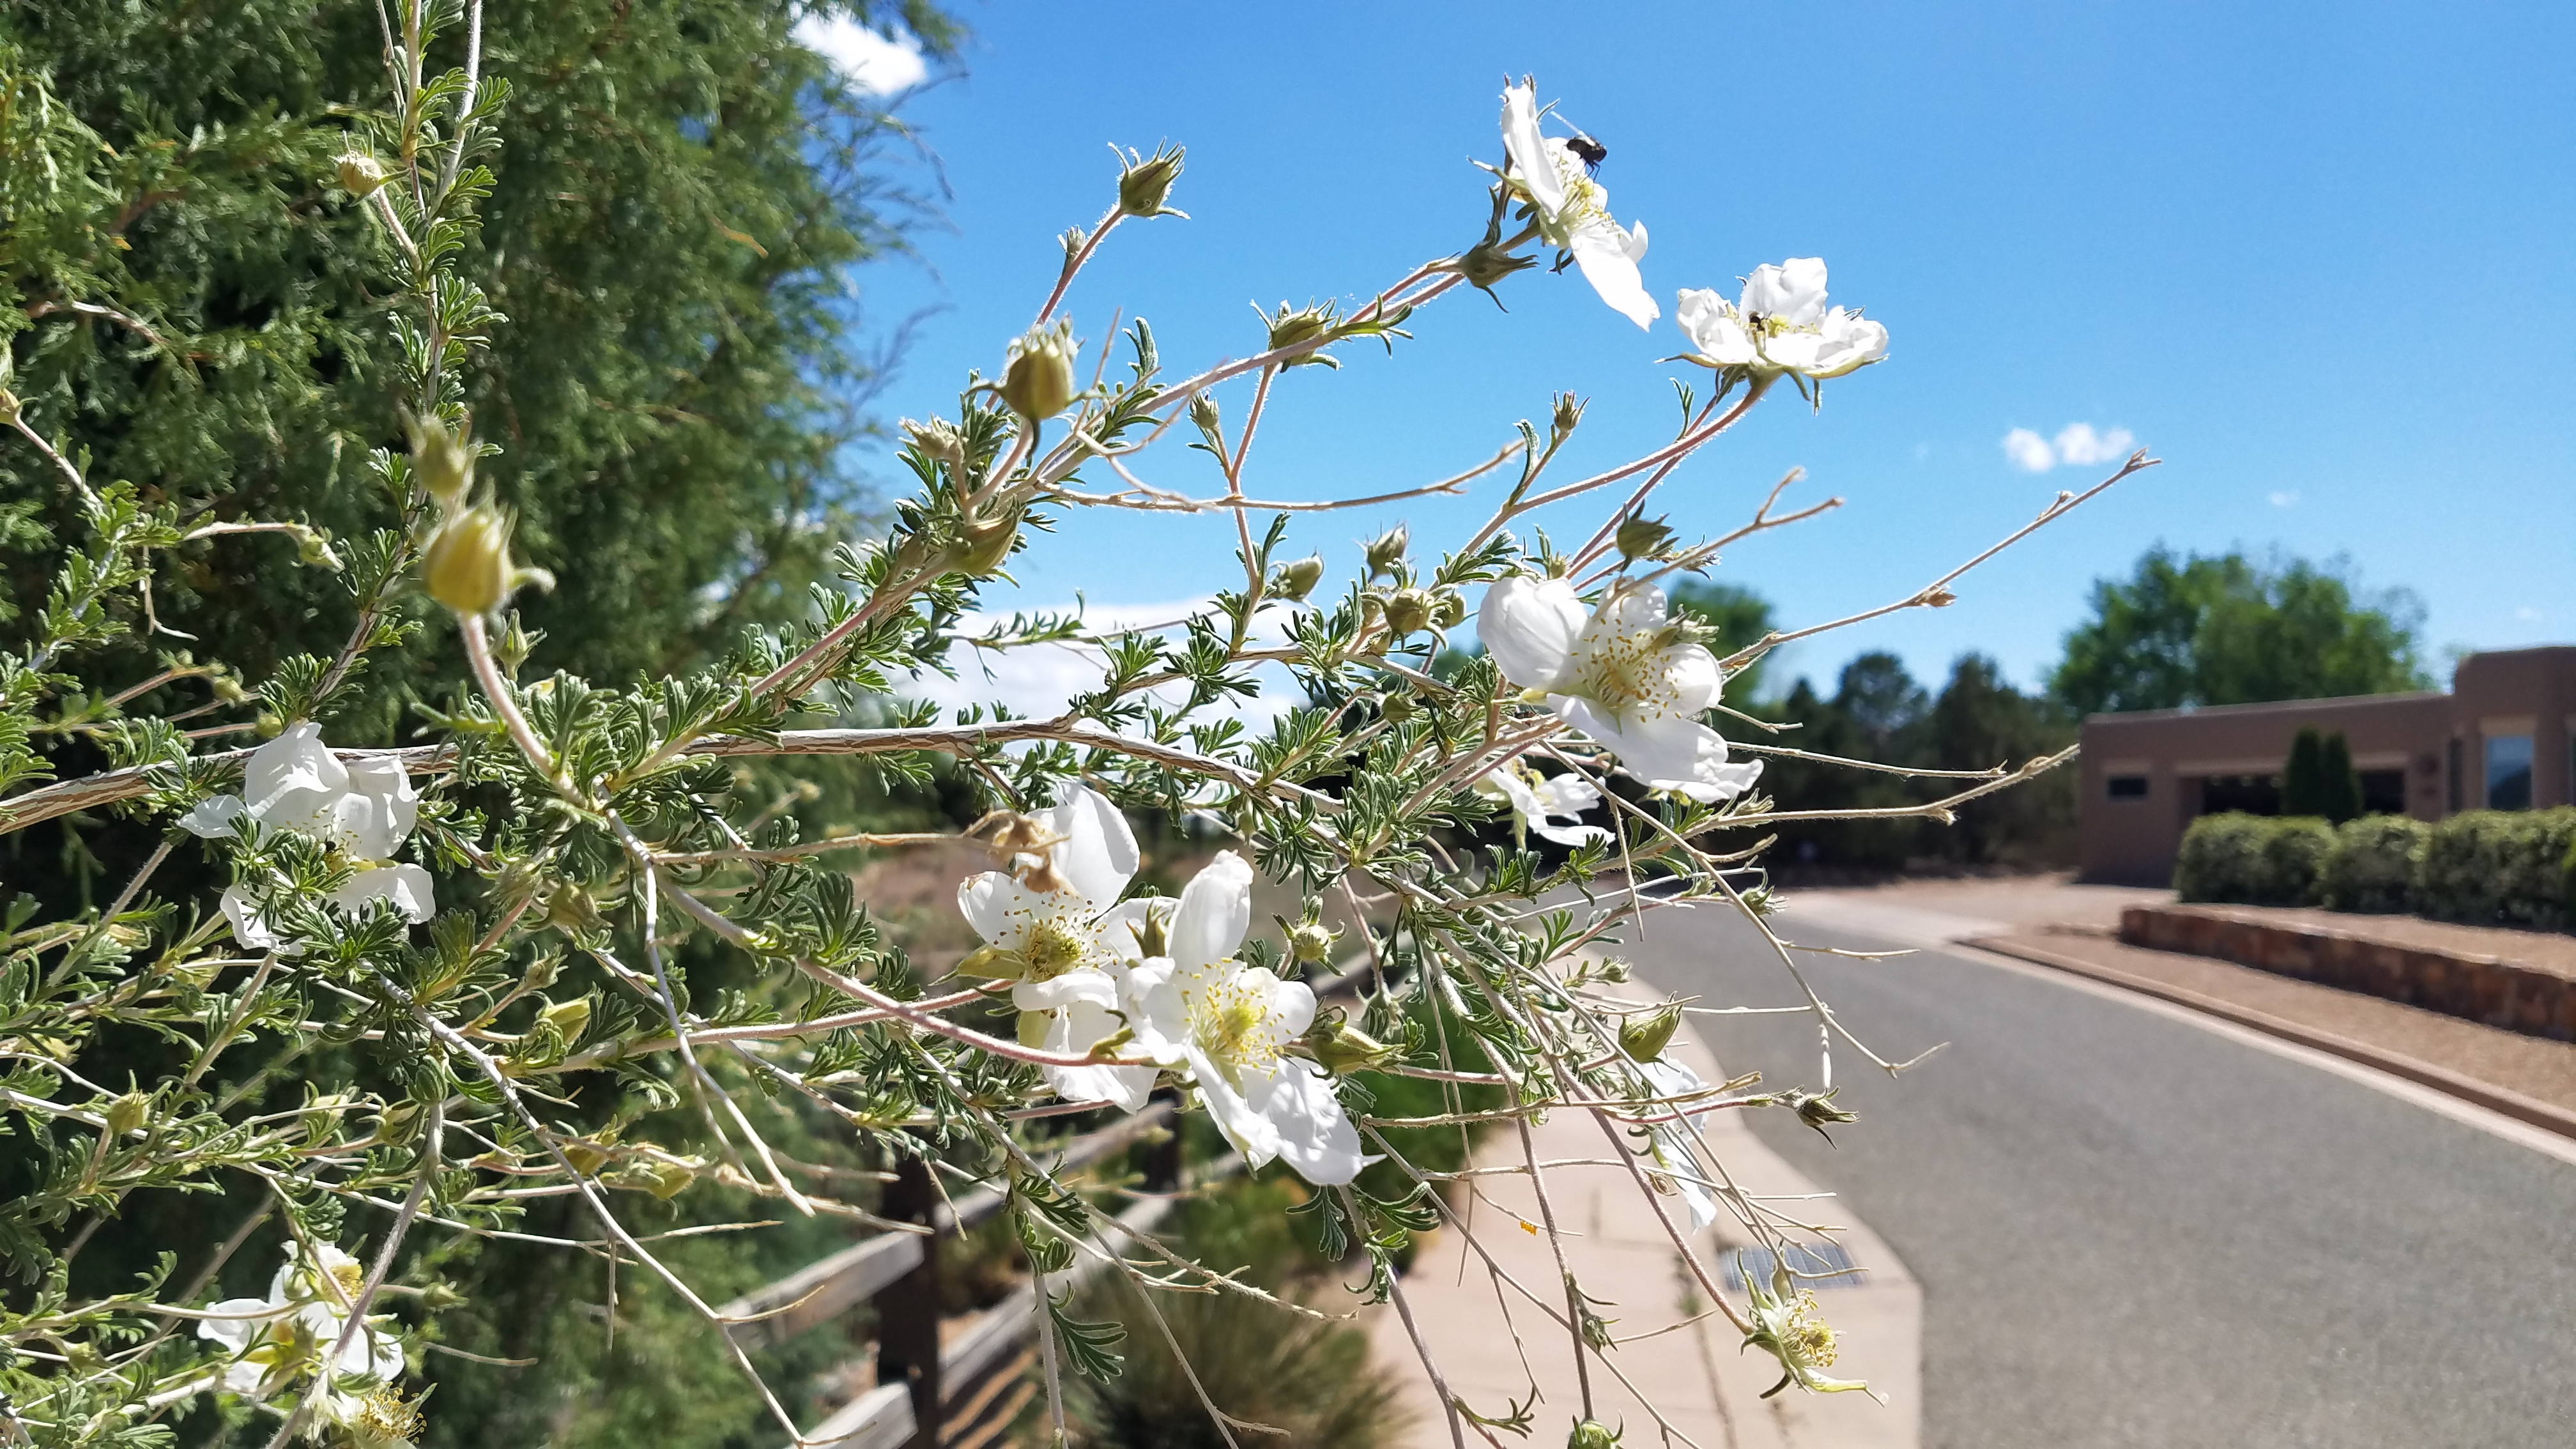 Apache plume in bloom